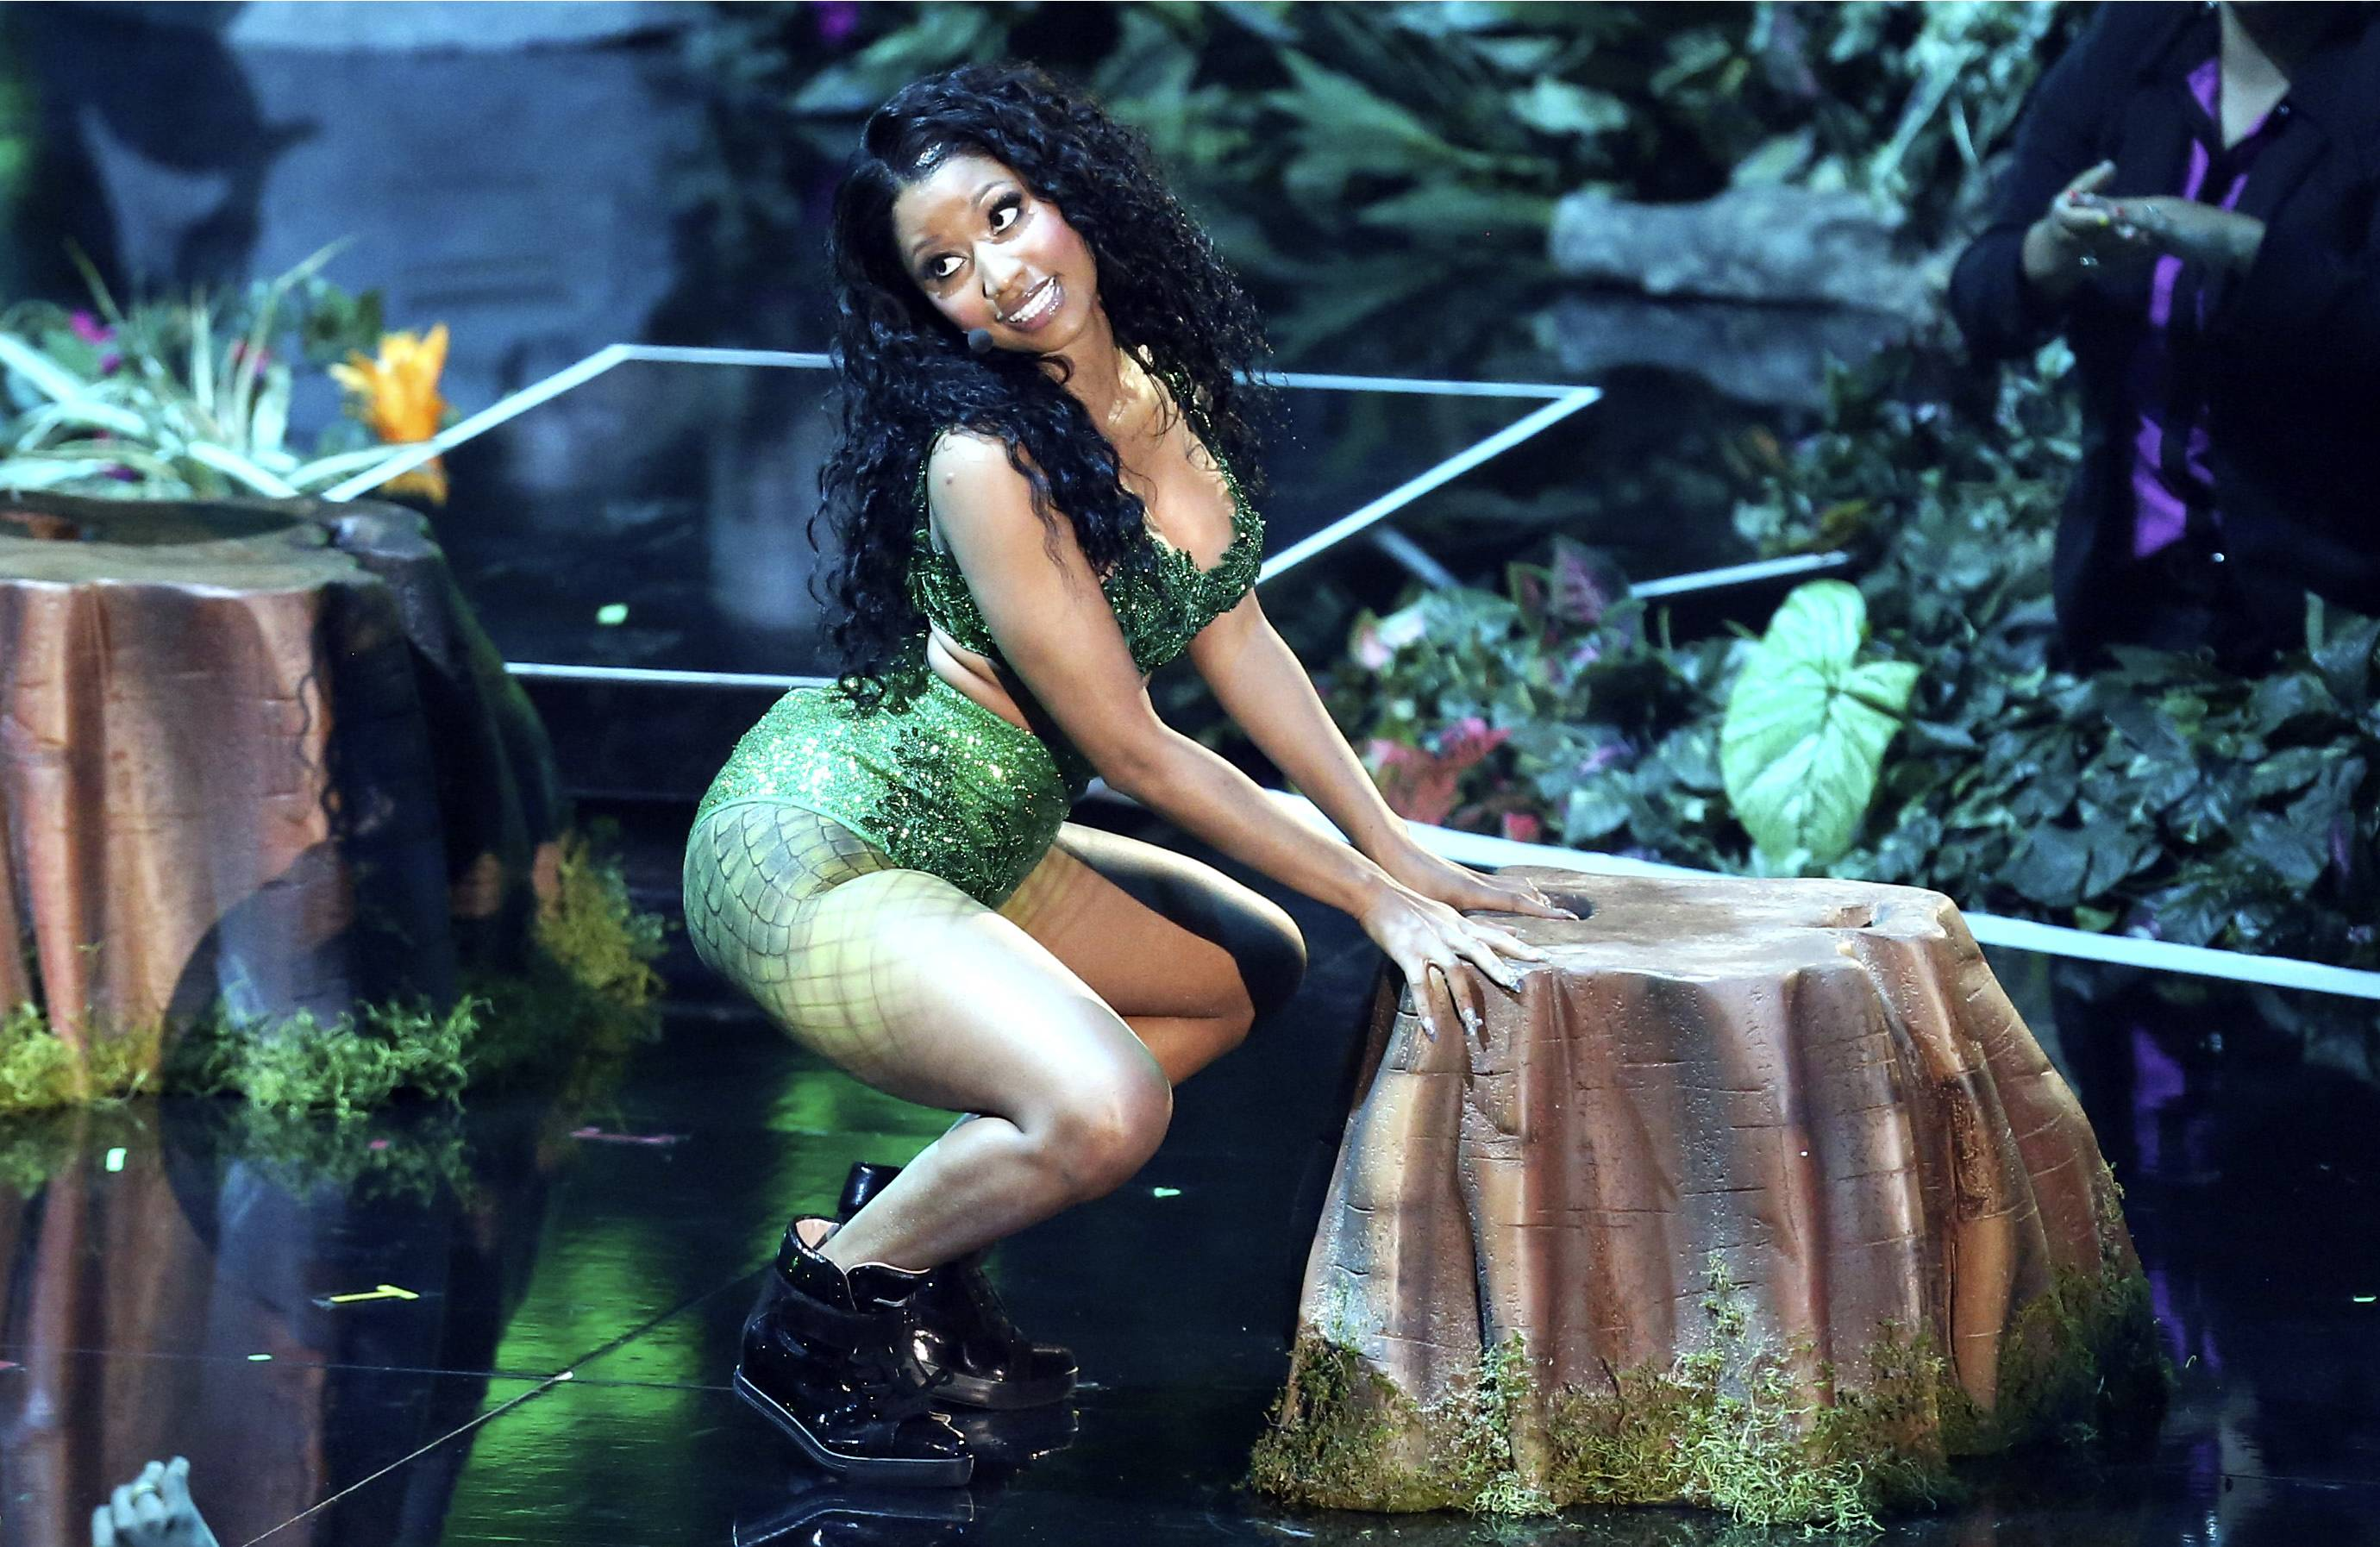 Nicki Minaj ditches the snakes for this performance at the MTV Video Music Awards.